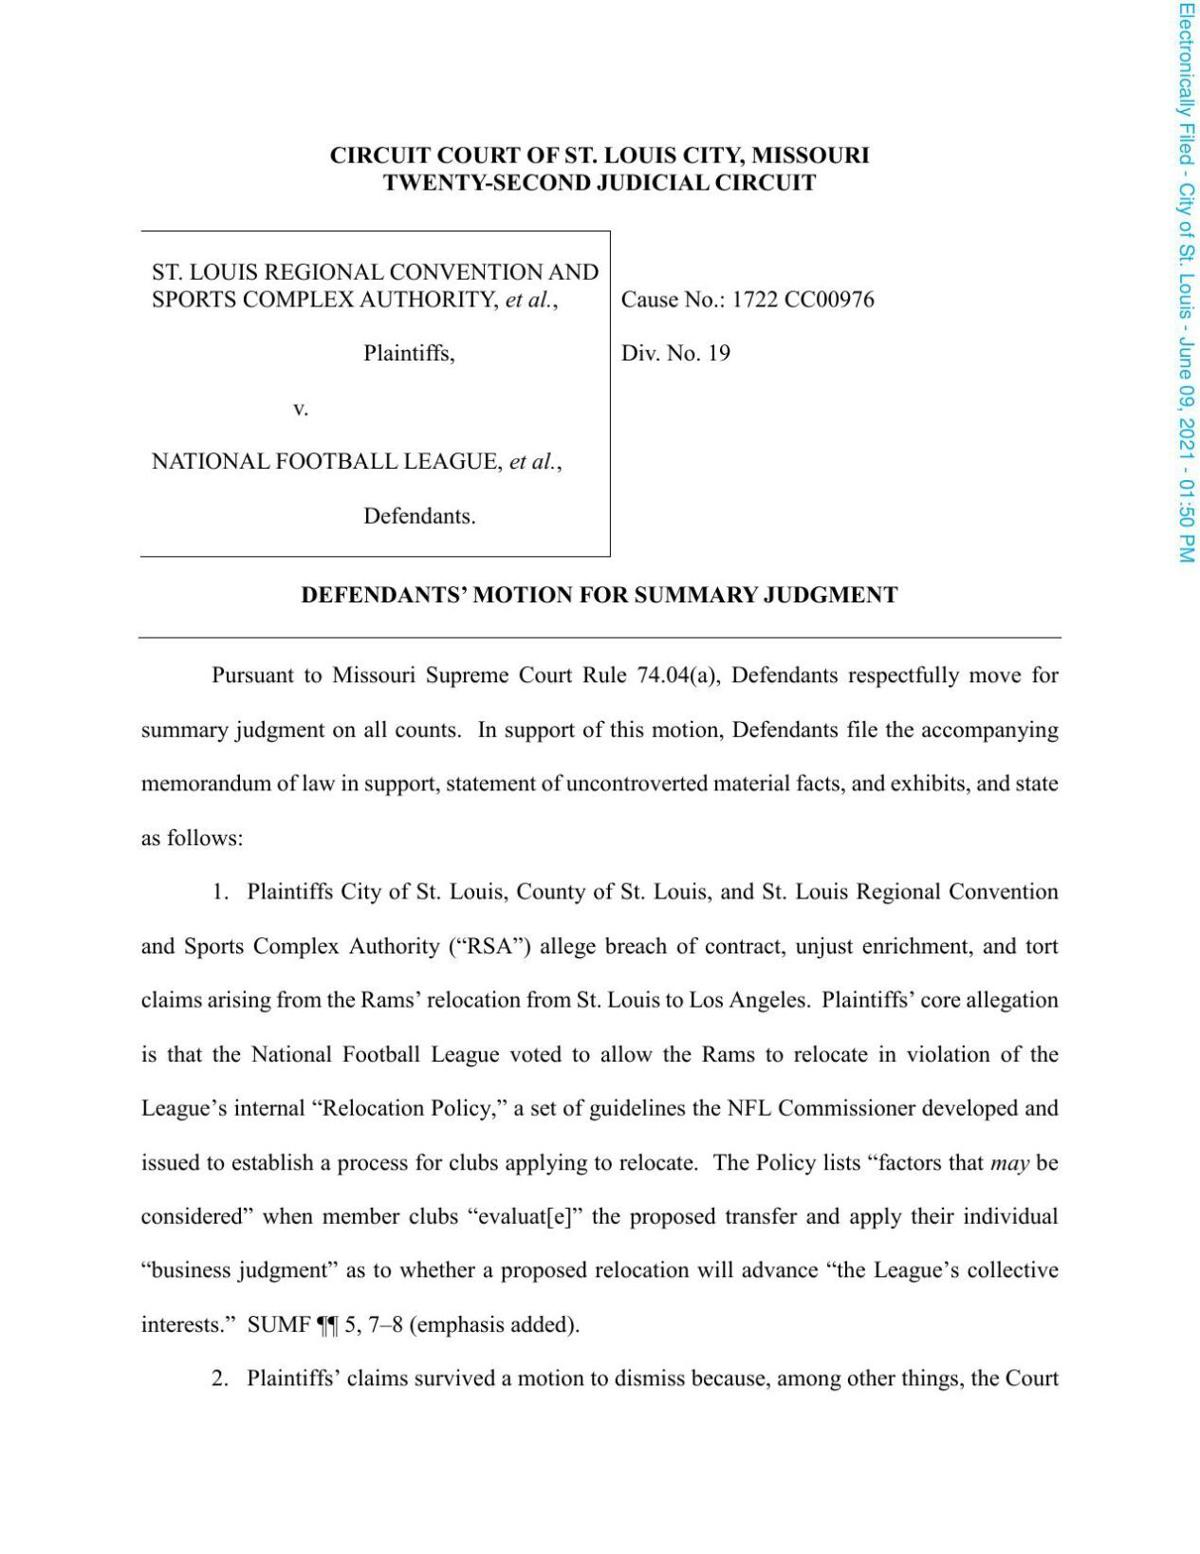 NFL, Rams and Kroenke's motion for summary judgment